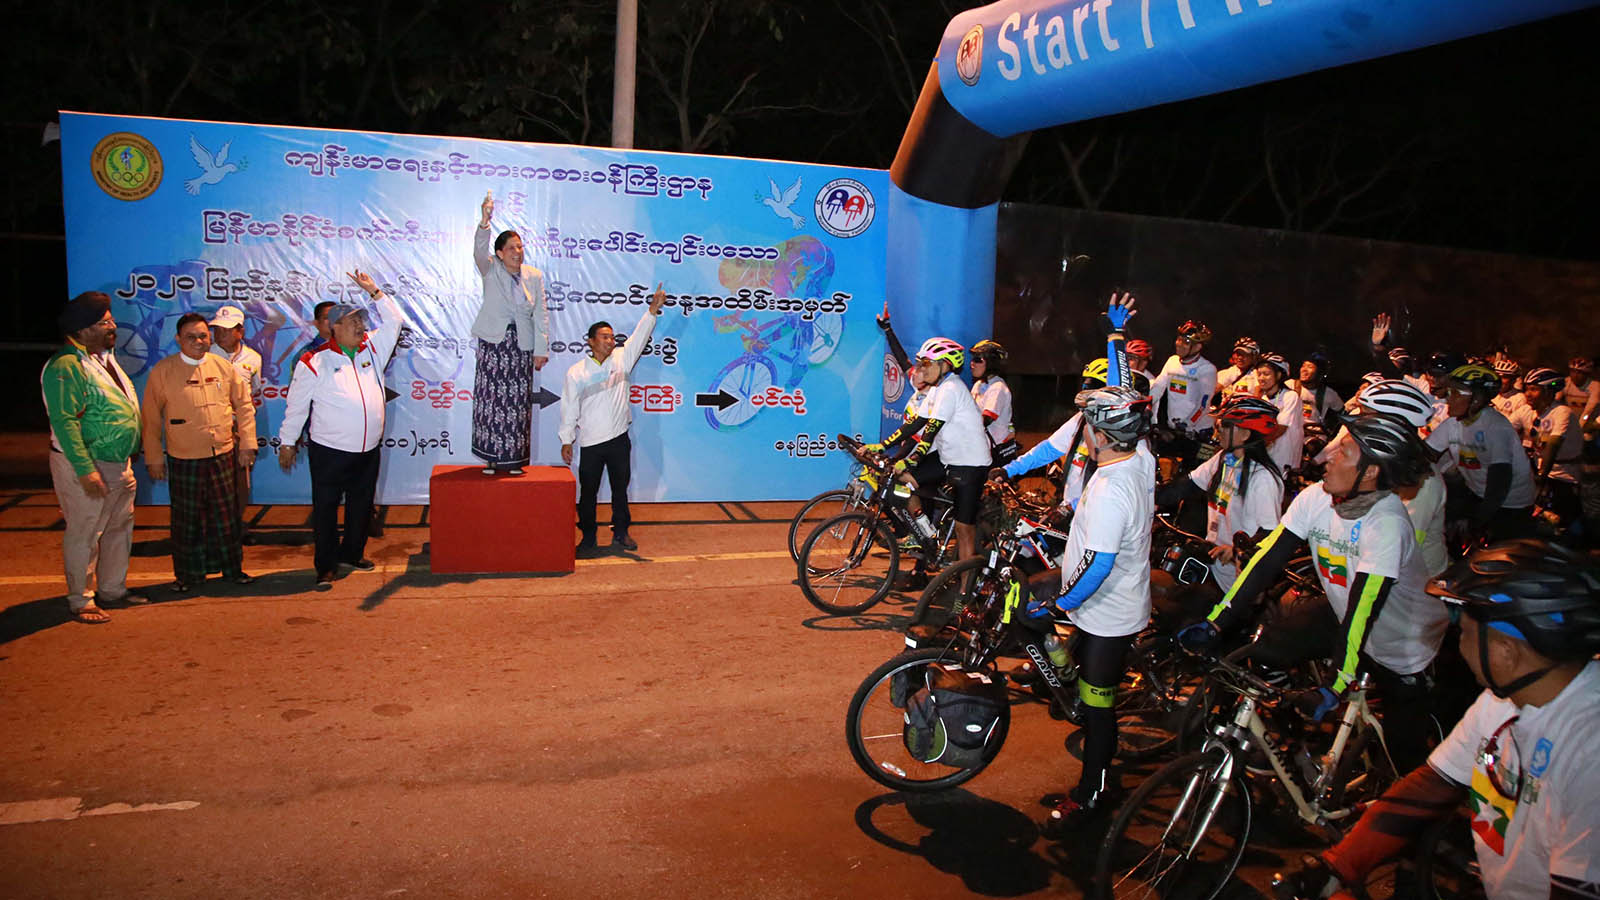 Deputy Minister for Health and Sports Dr Mya Lay Sein fires gun to start the peace cycling event in Nay Pyi Taw yesterday.Photo: MNA